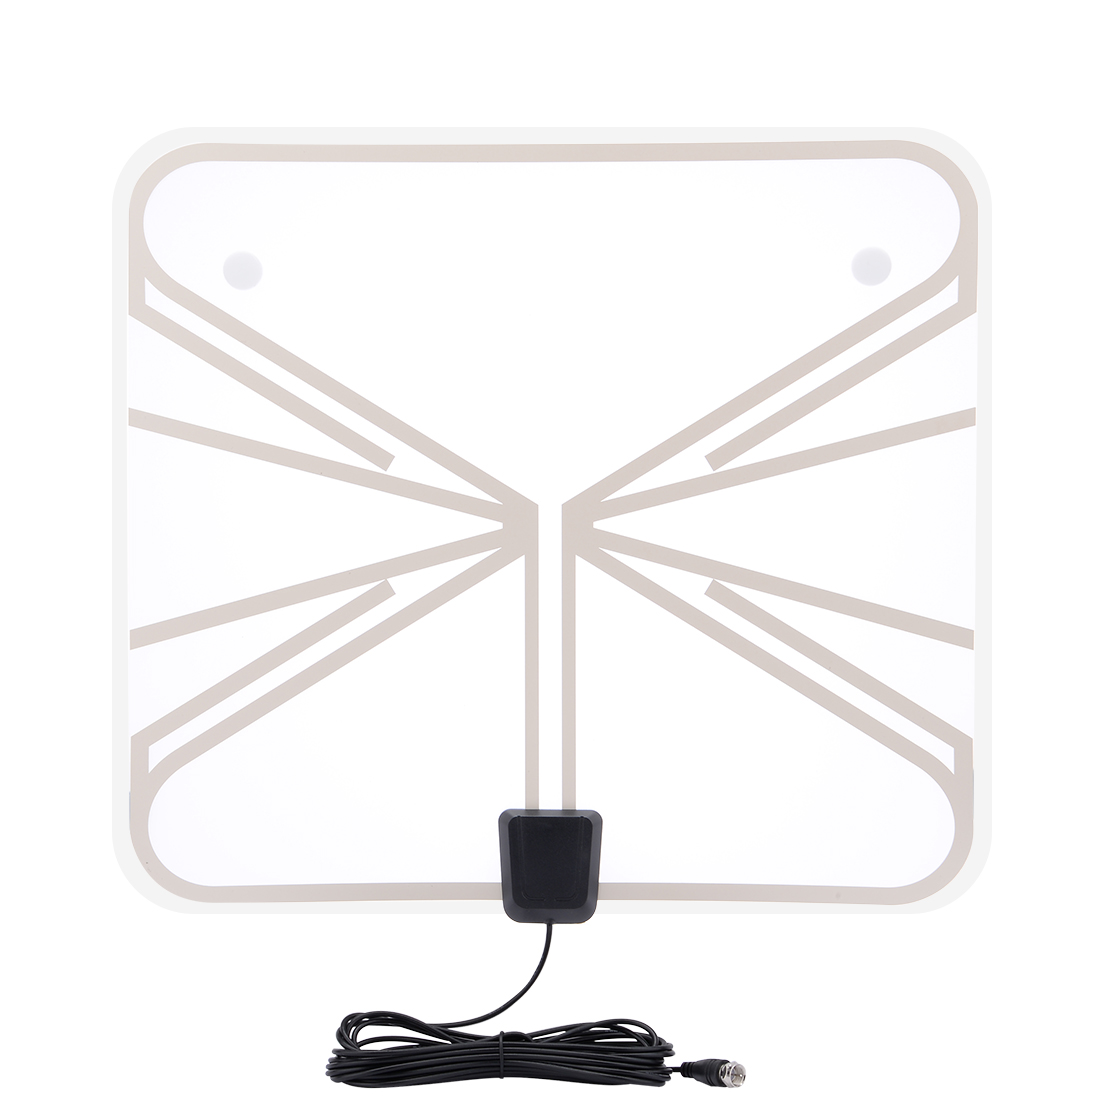 Indoor Home HDTV Aerial 50 Miles Range Amplified HDTV Antenna with Power Supply Amplifier(US Plug)